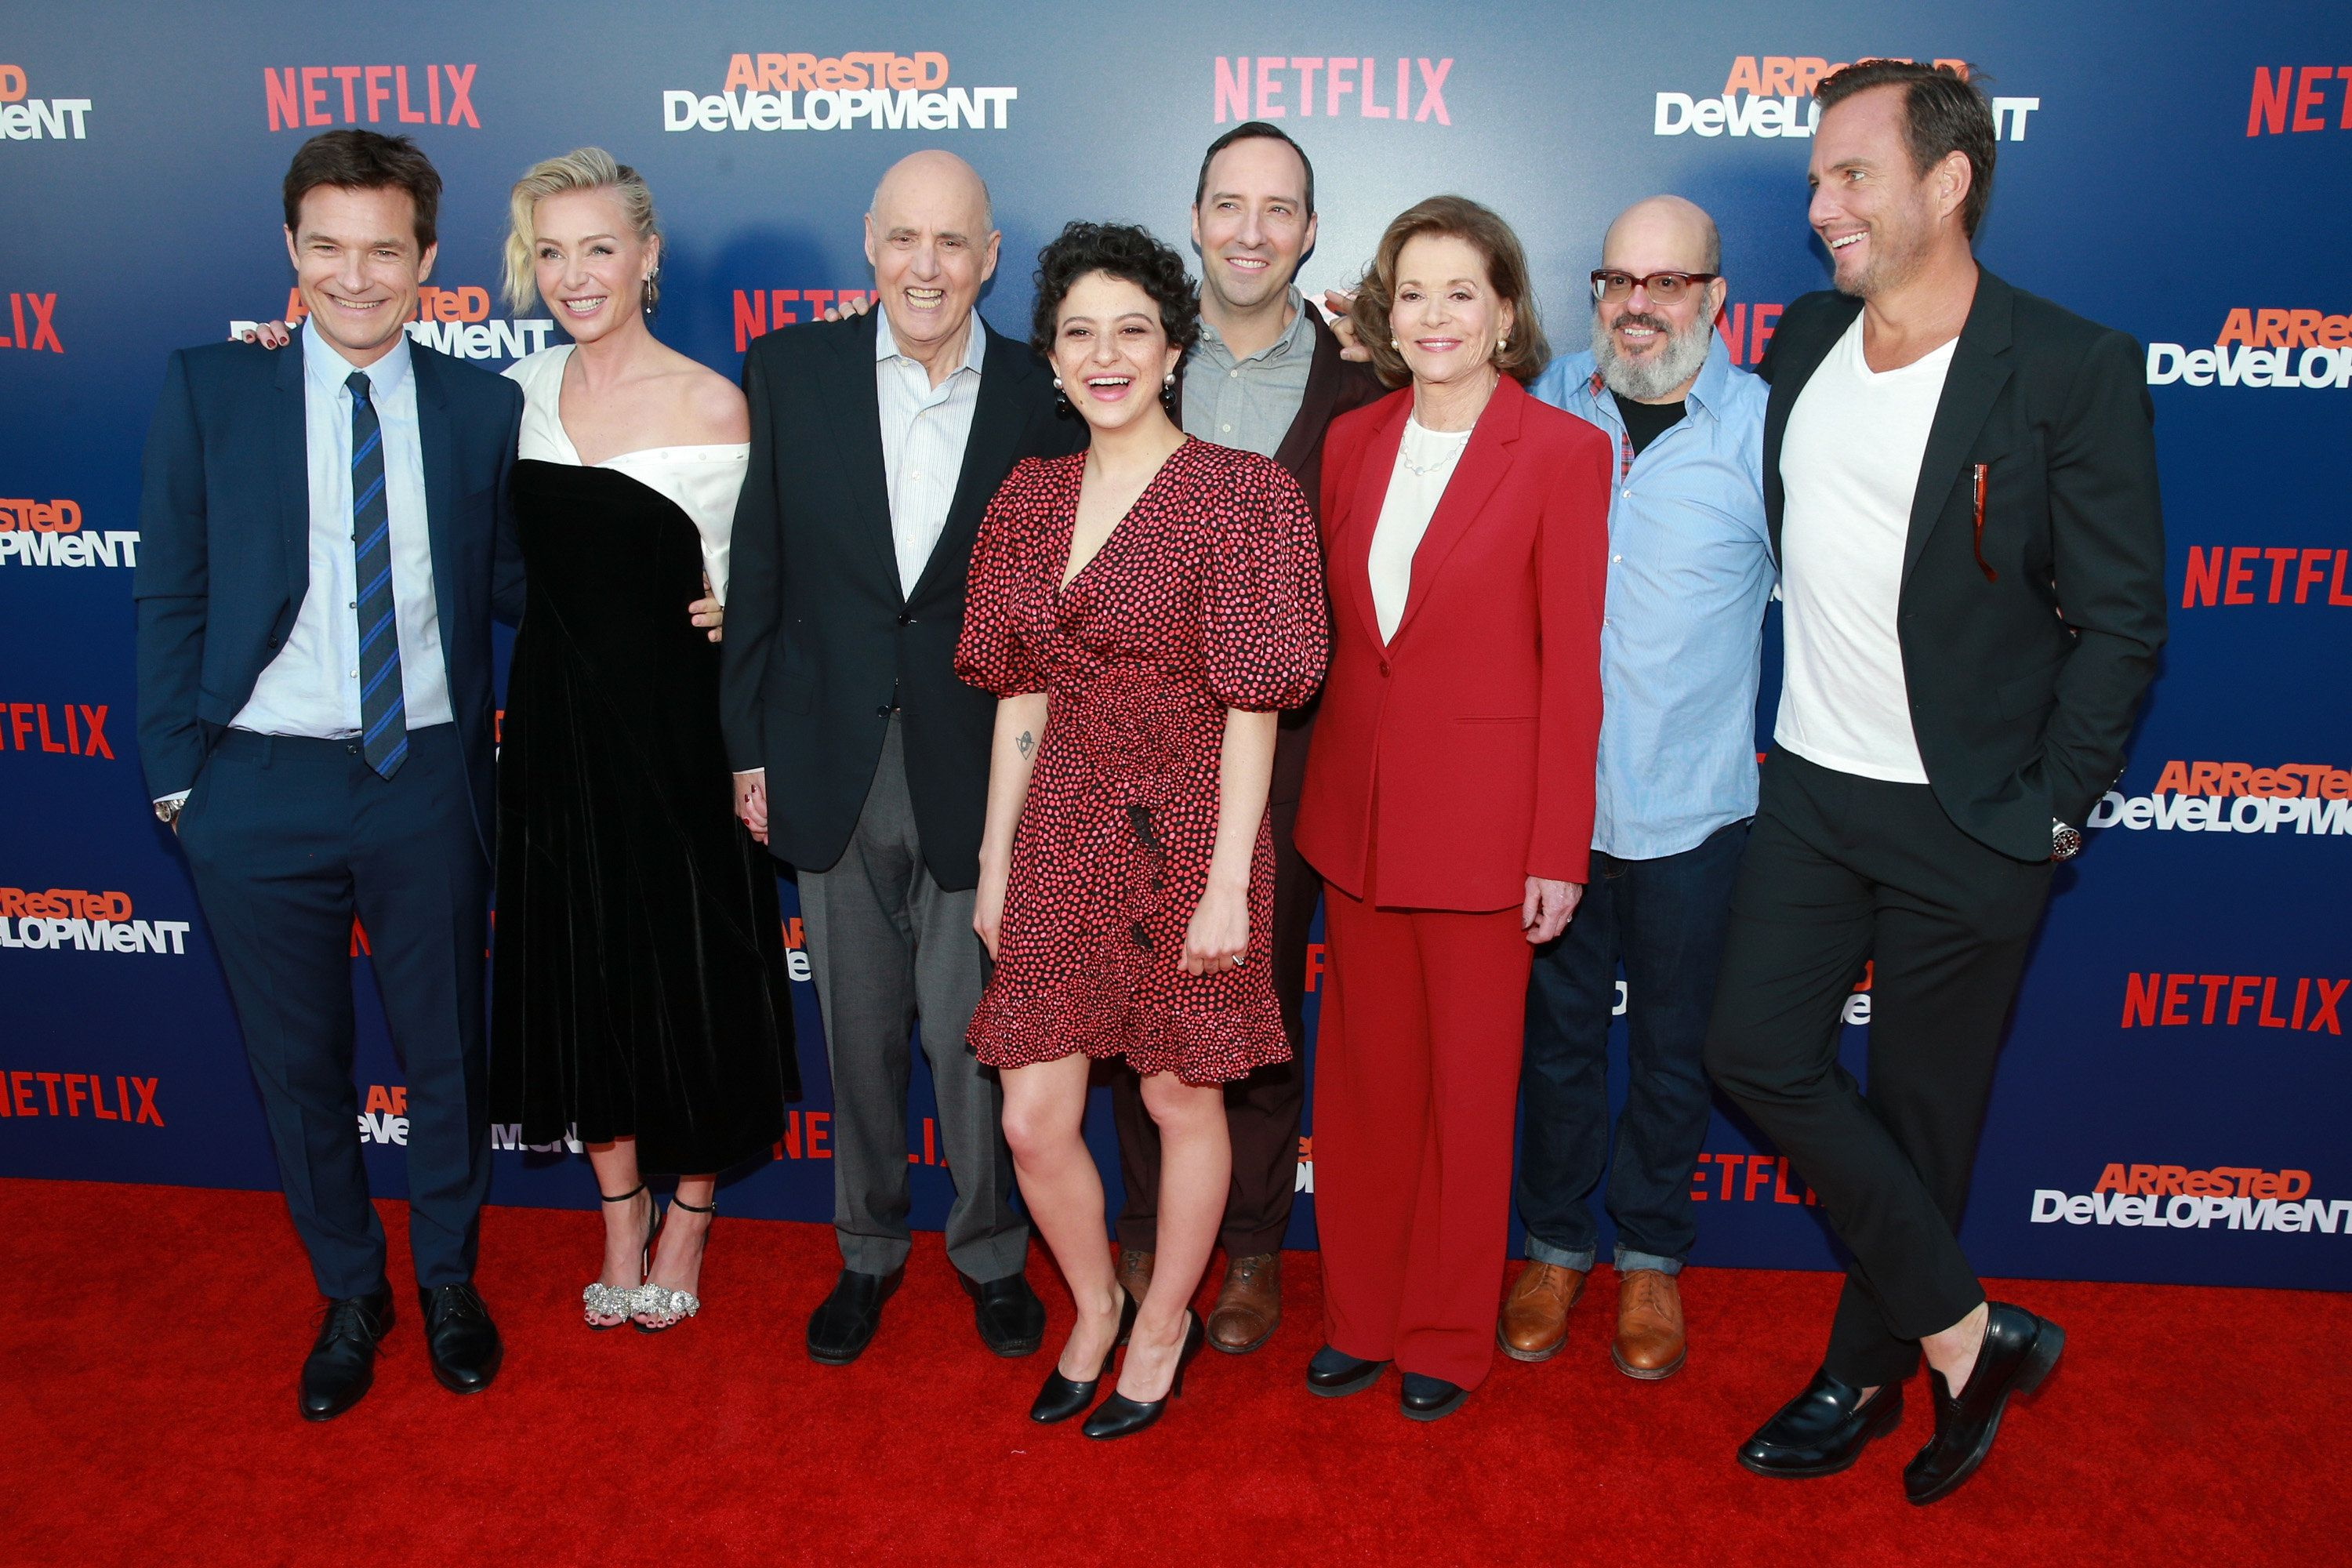 Male 'Arrested Development' Stars Slammed Over Group Interview About Jeffrey Tambor 'Harassment'